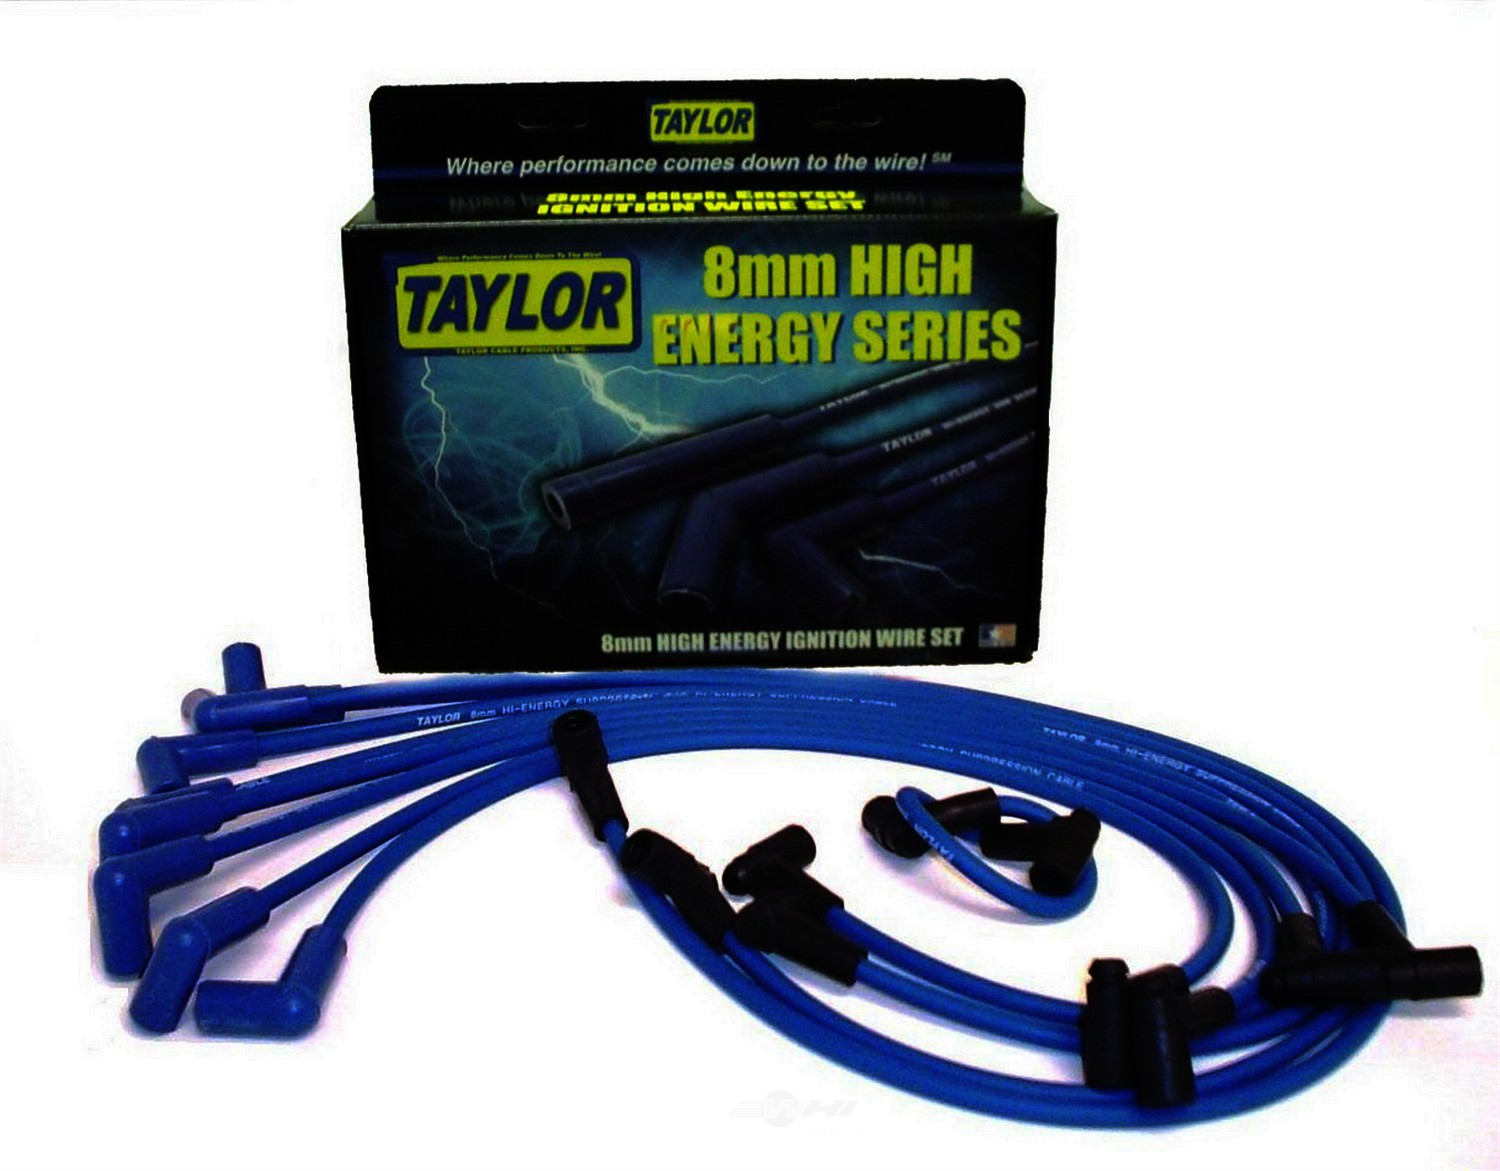 TAYLOR CABLE - High Energy 8mm Ignition Wire Set - TAY 64602